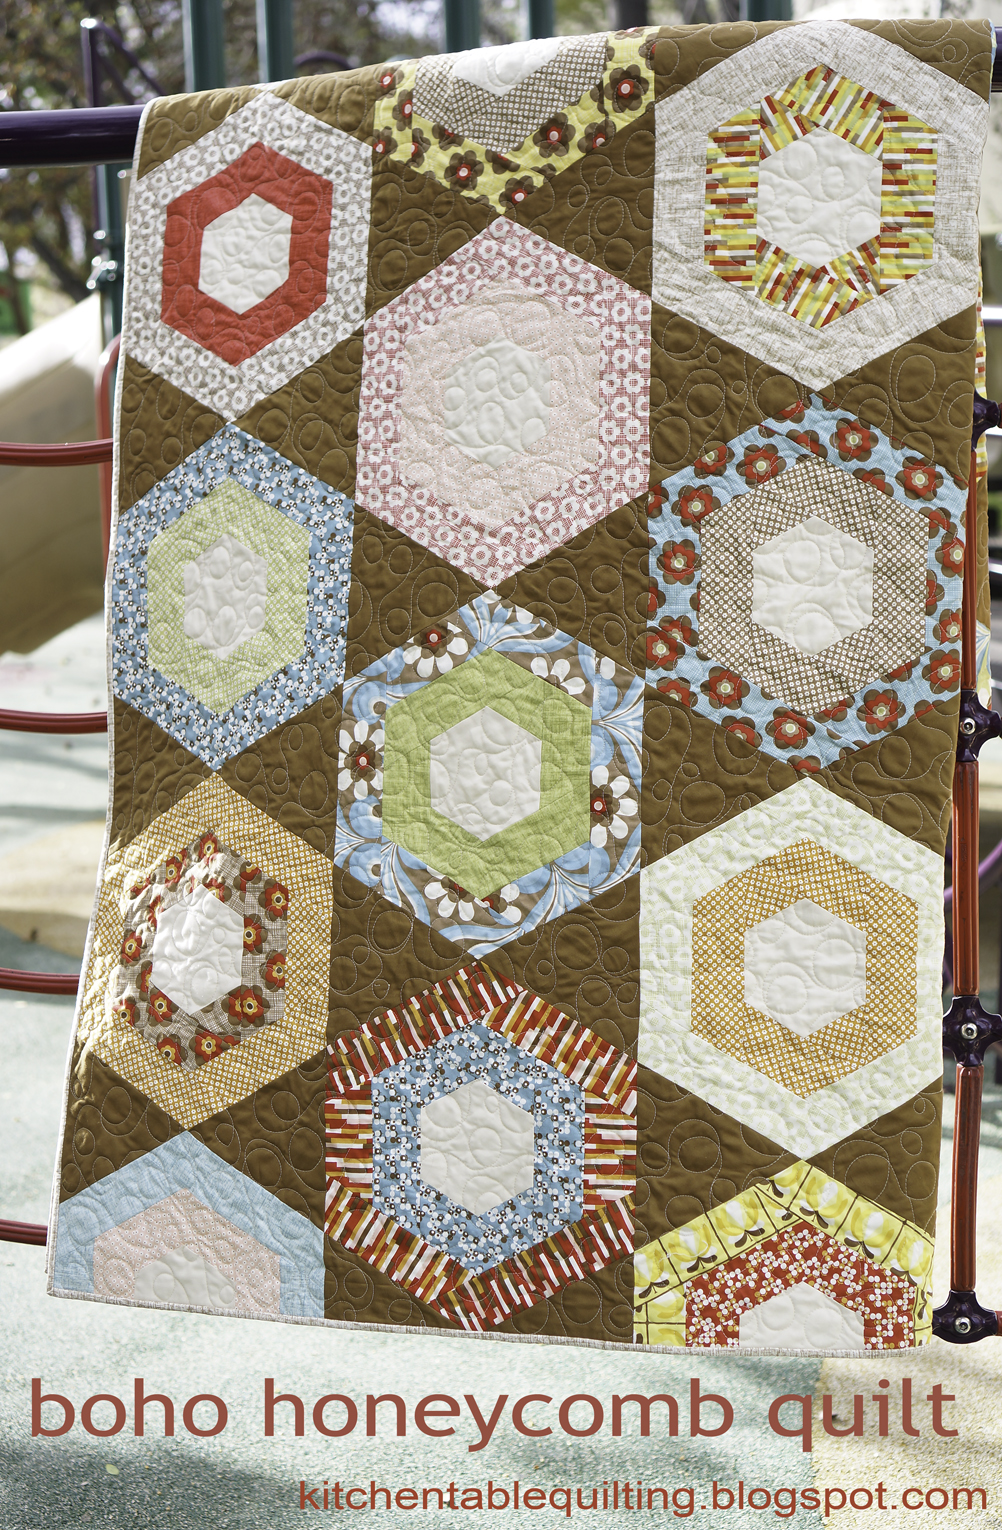 Boho Honeycomb Quilt | Kitchen Table Quilting